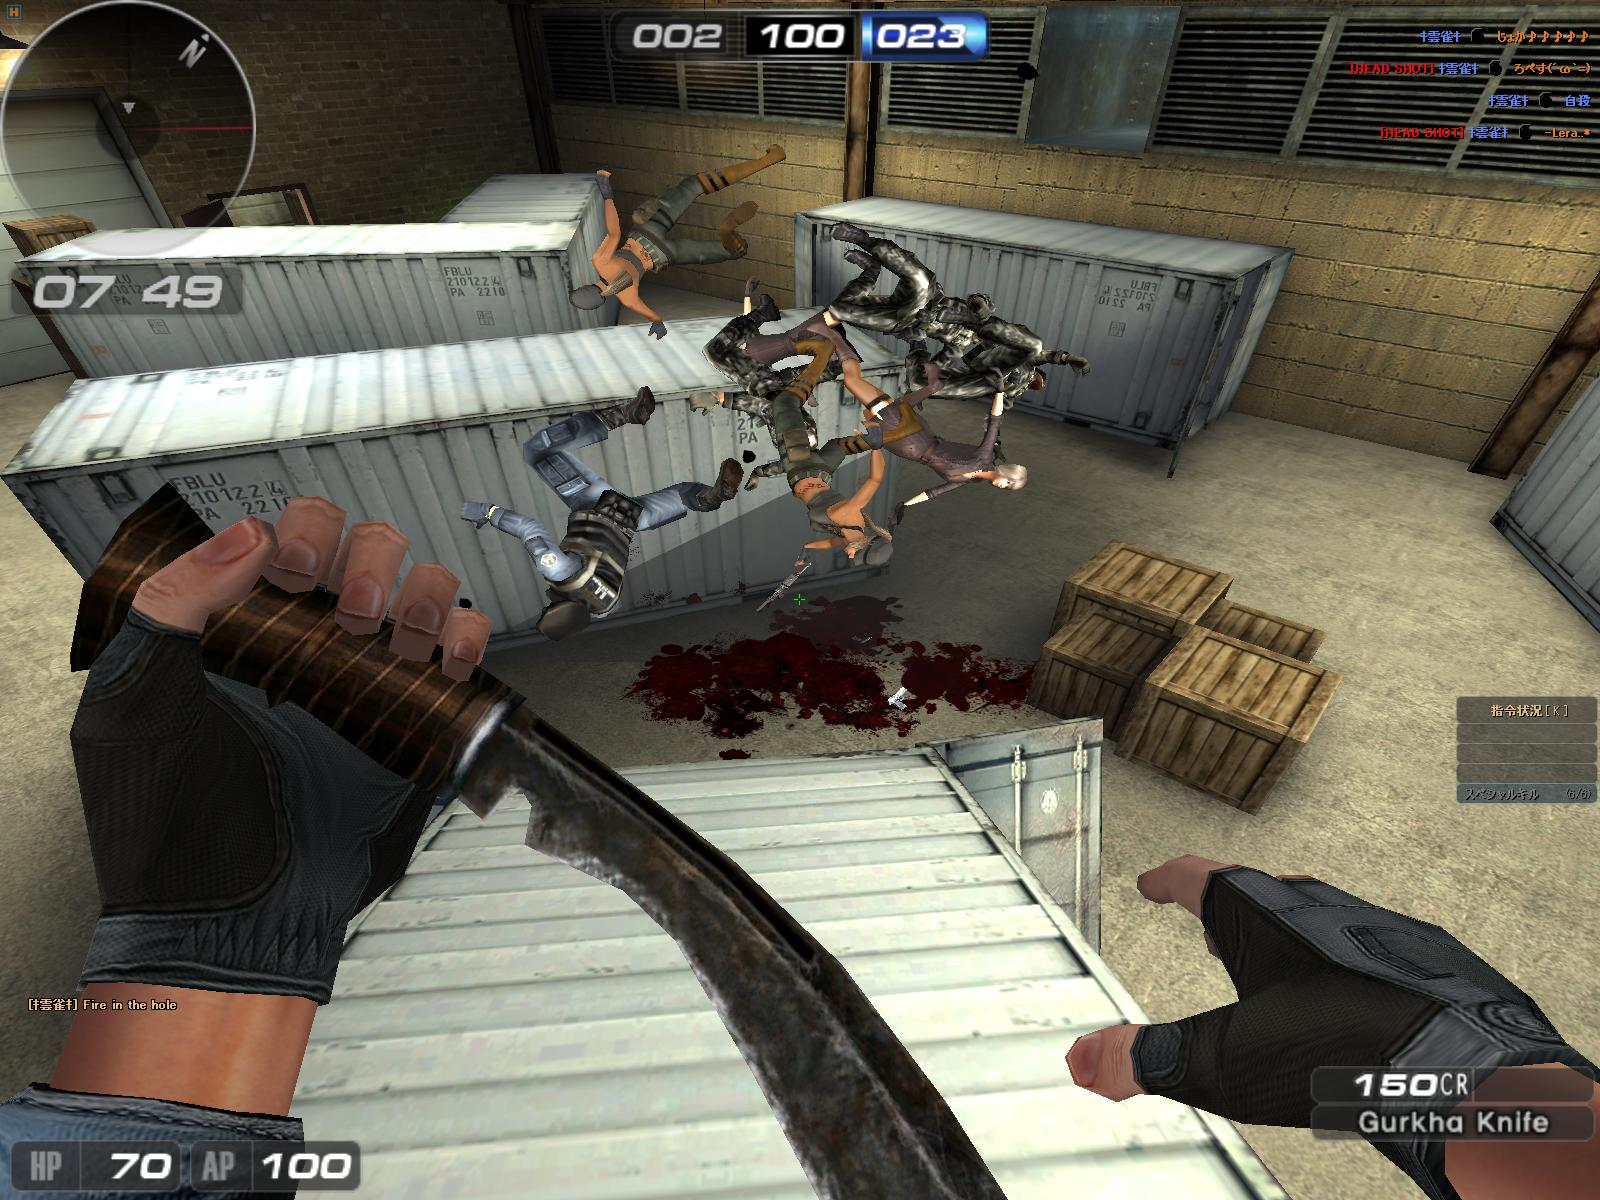 ScreenShot_157.jpg